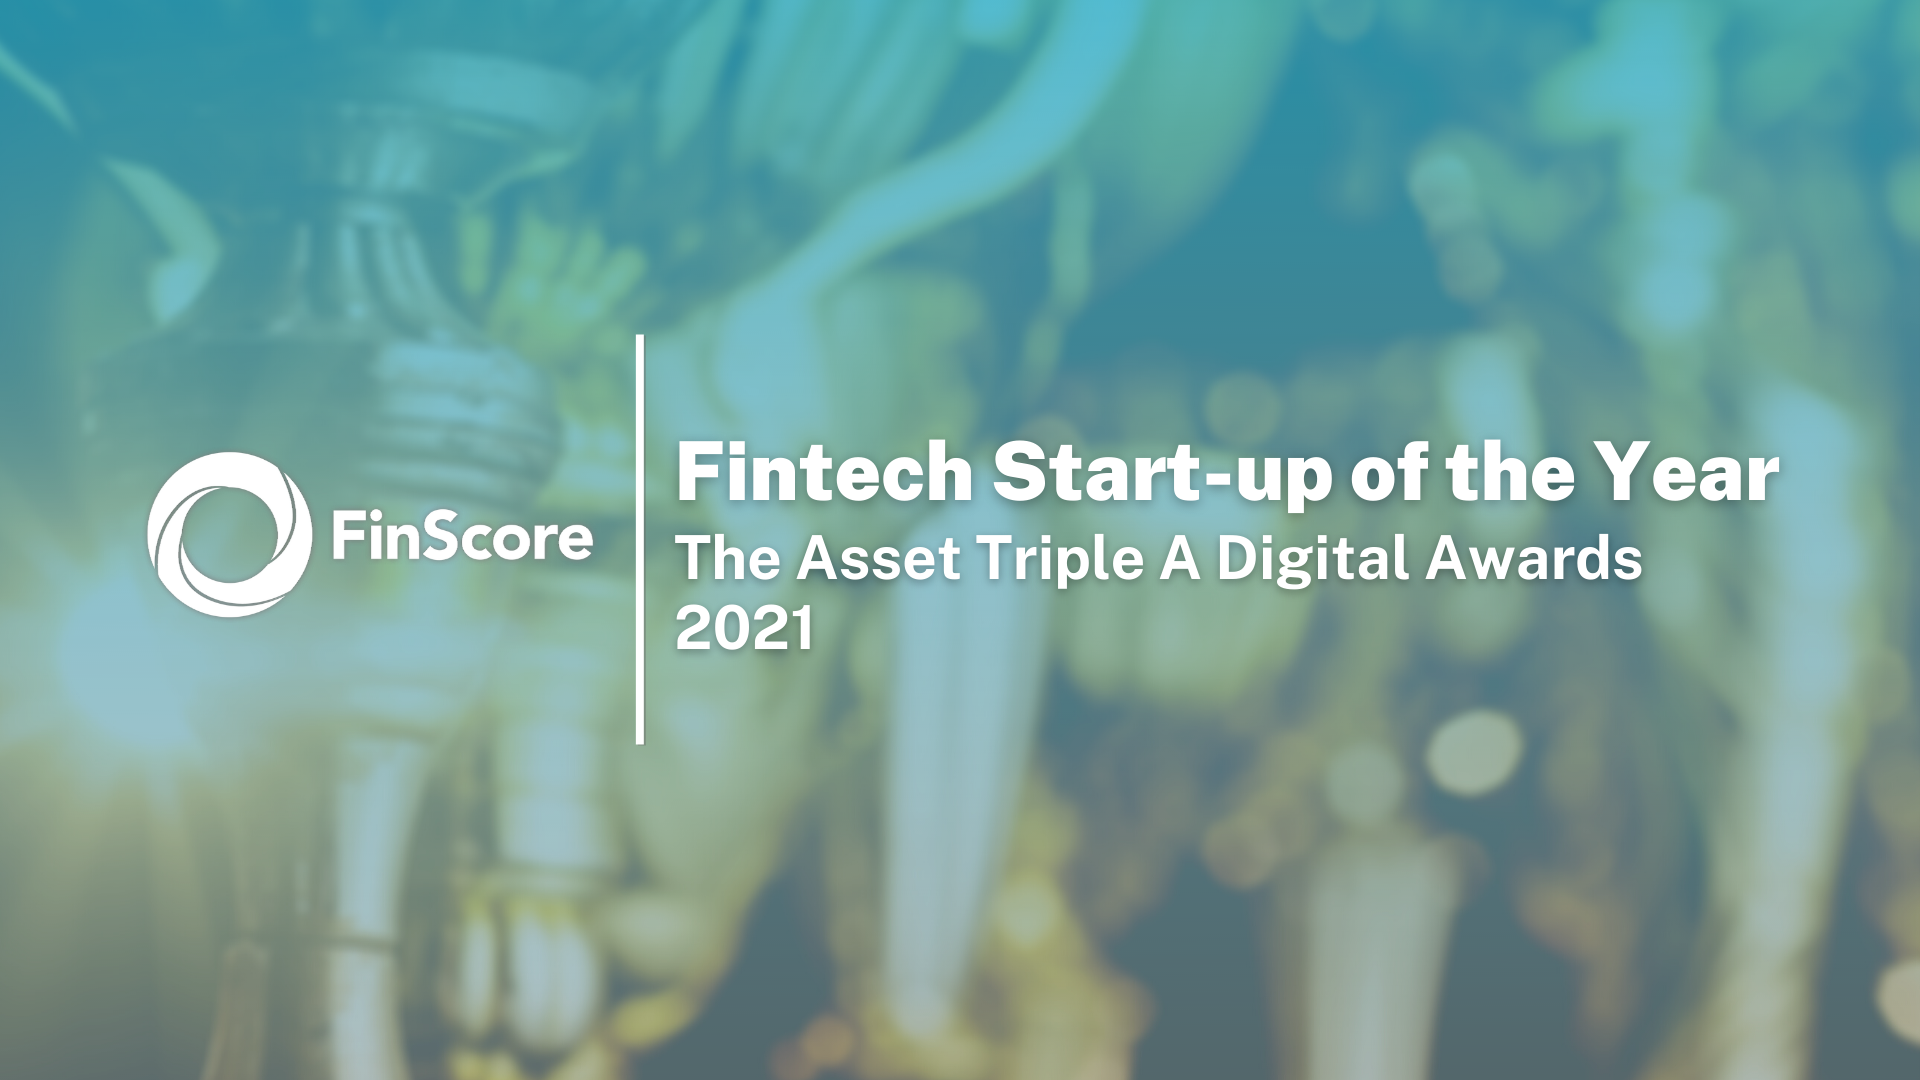 The Asset Hails FinScore as 'Fintech Start-up of the Year 2021' in the Philippines